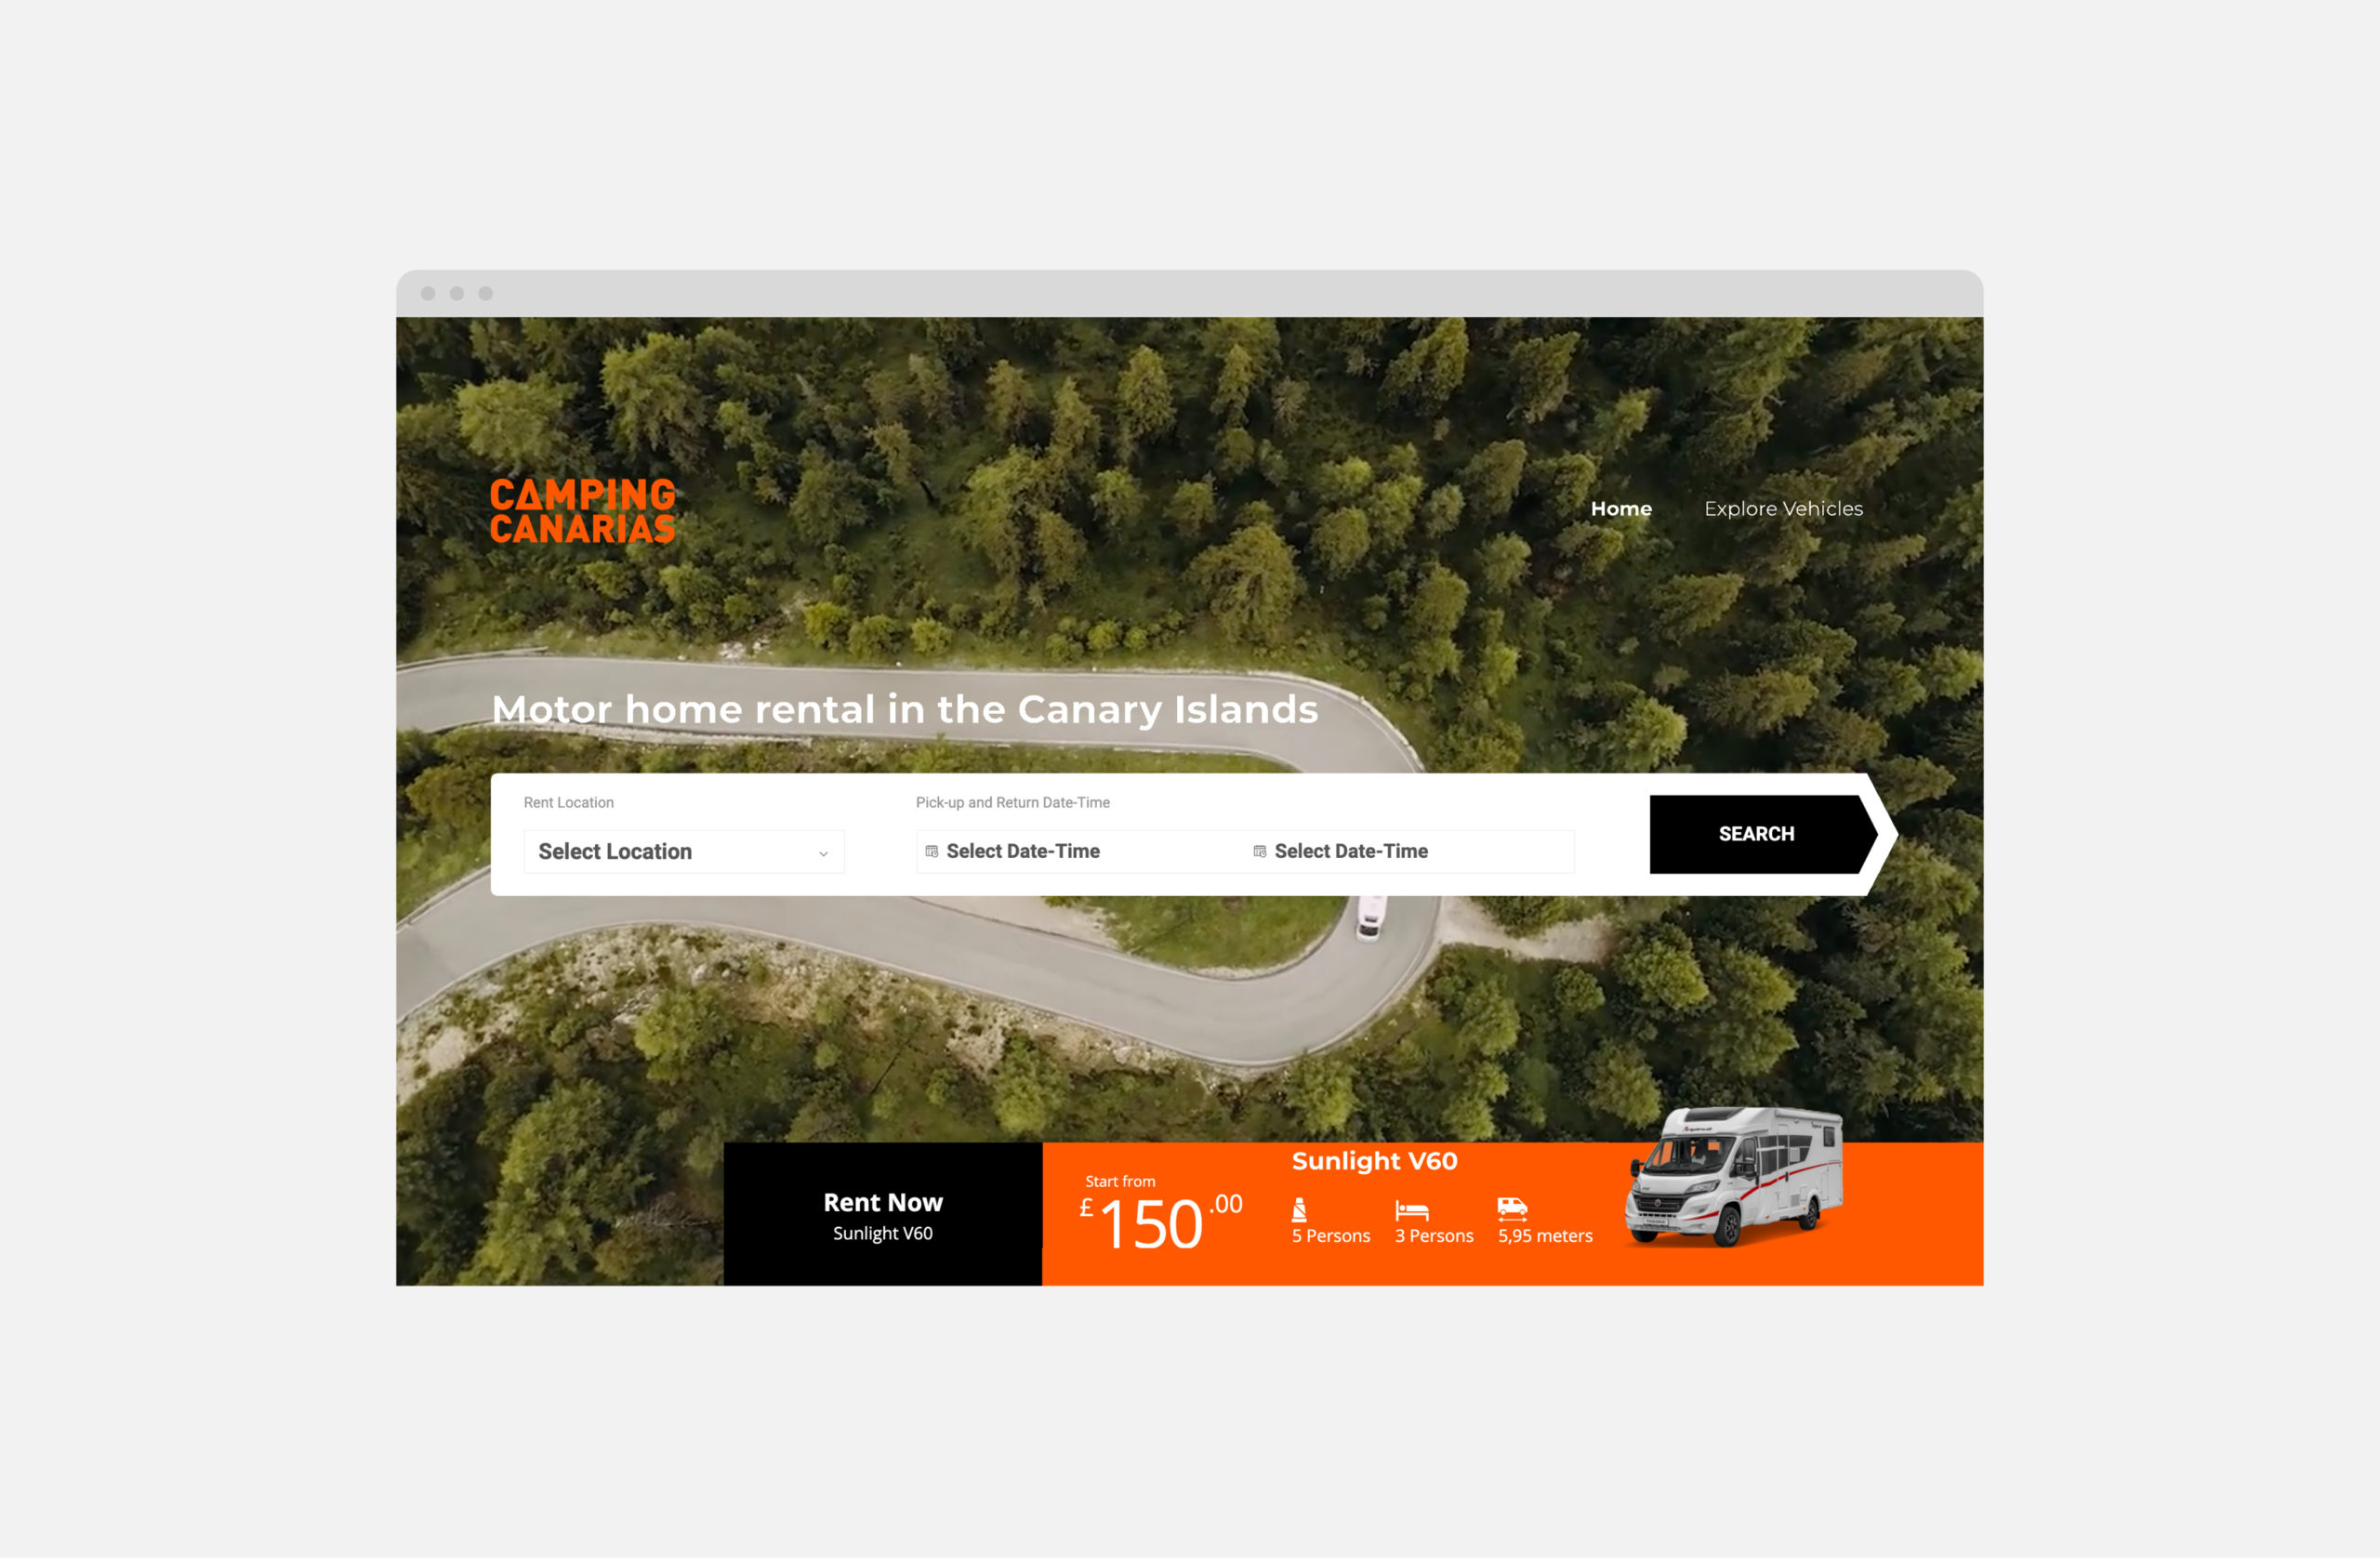 Camping canarias homepage